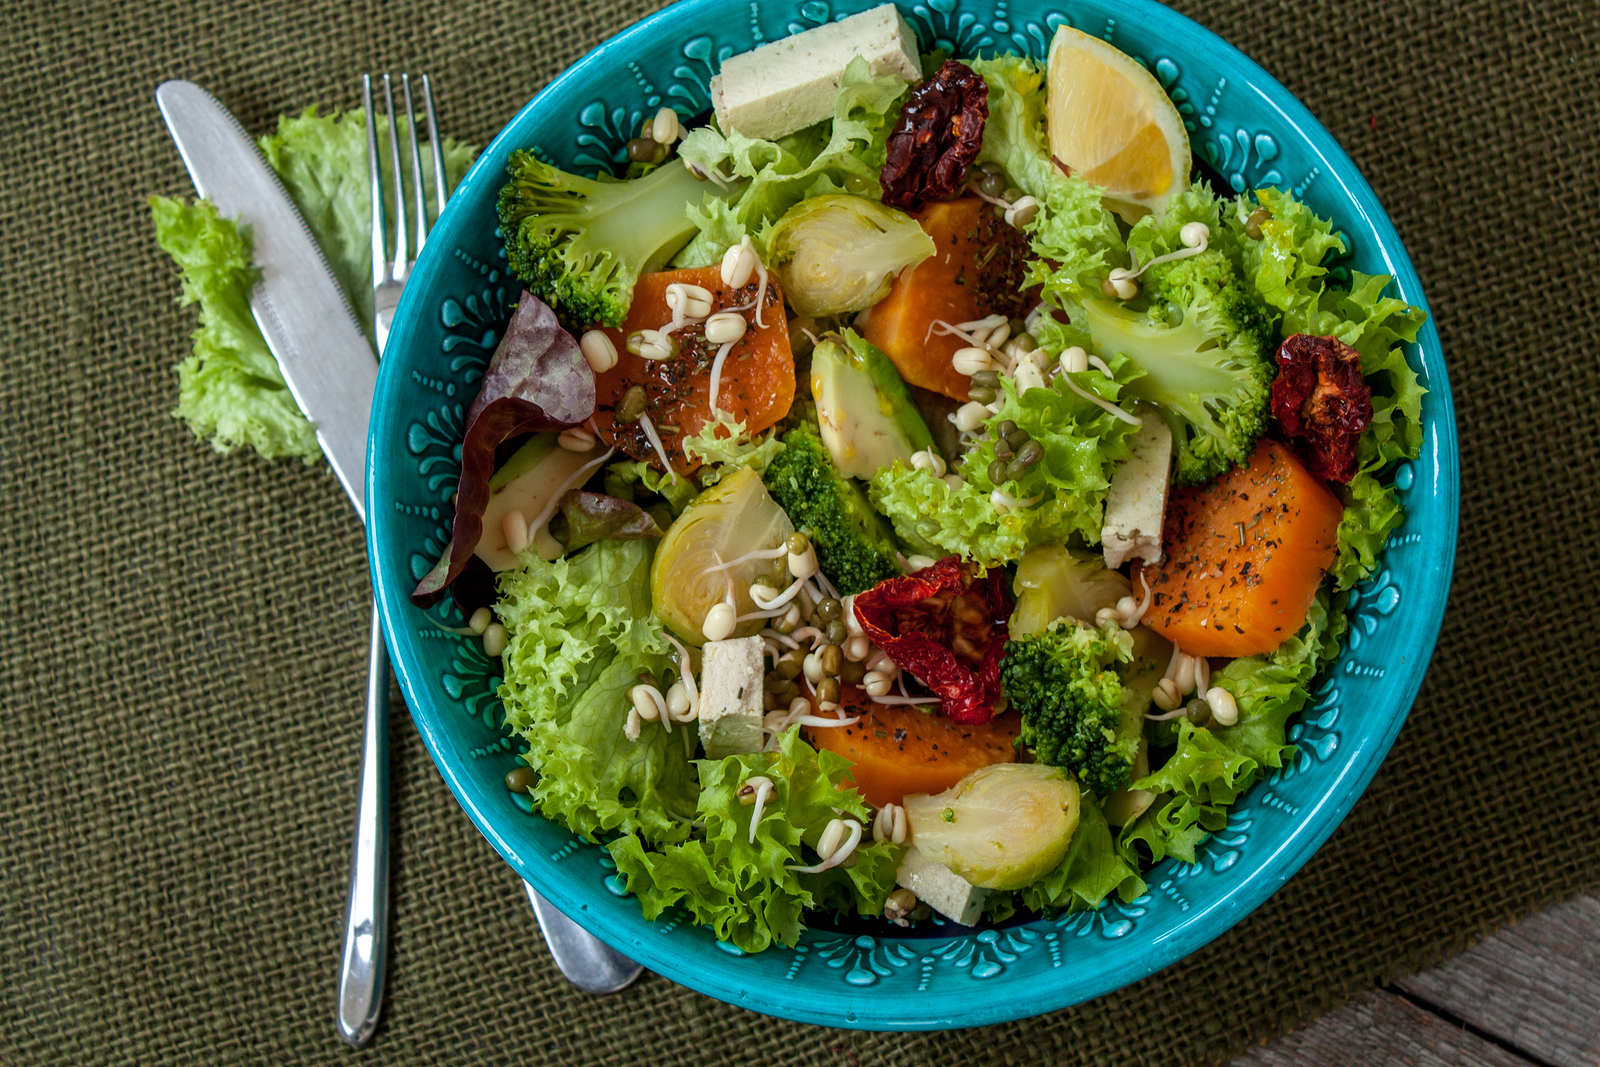 Sweet Potato and Brussels Sprouts Salad